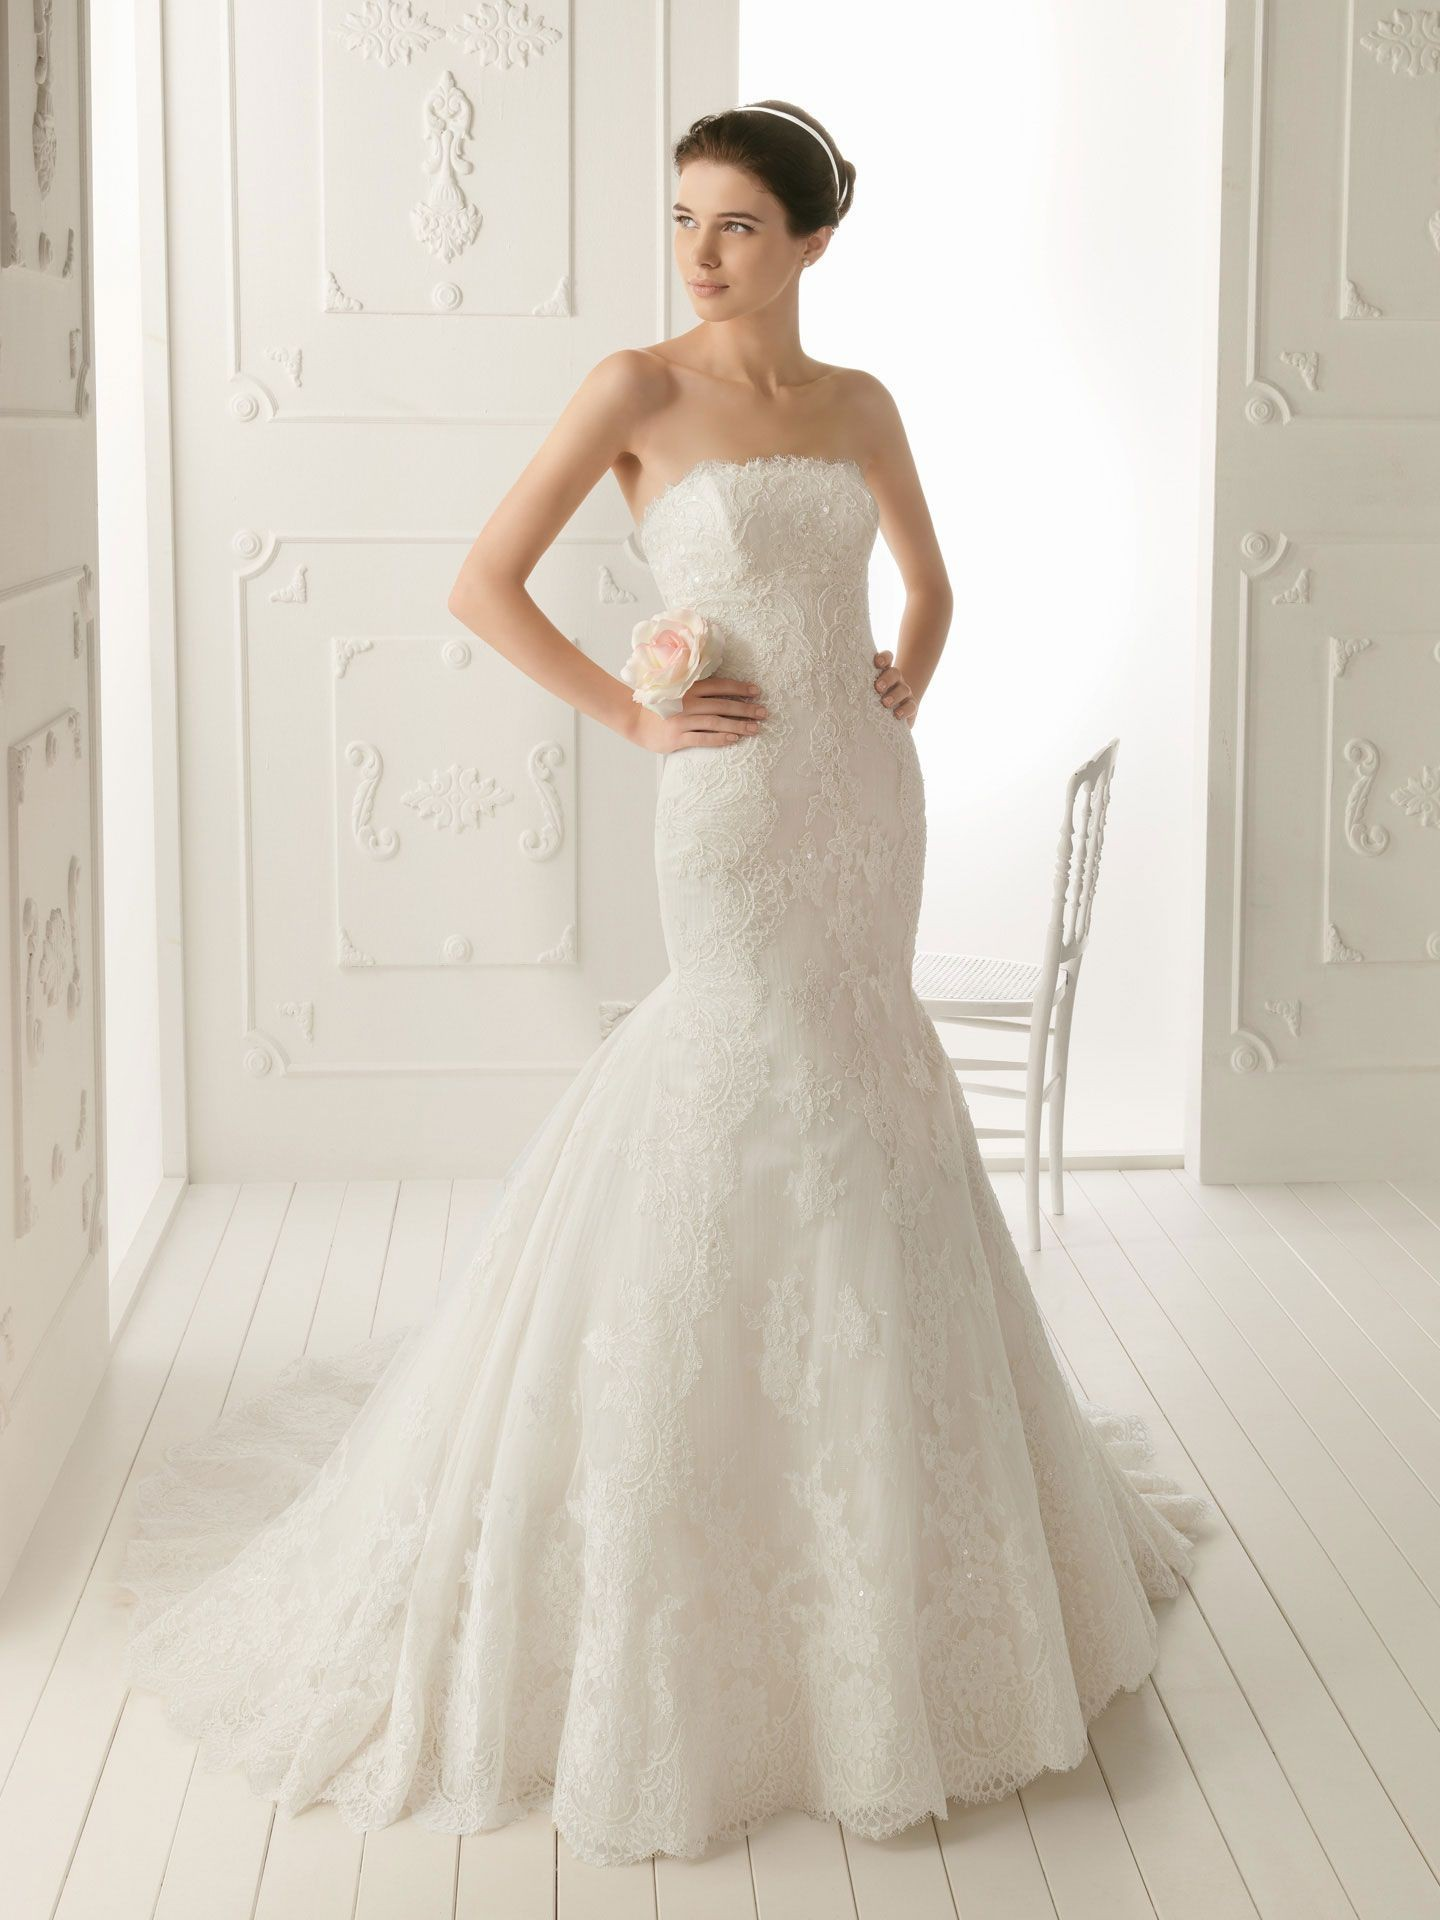 mermaid wedding dresses wedding dresses mermaid style Strapless Mermaid Wedding Dress